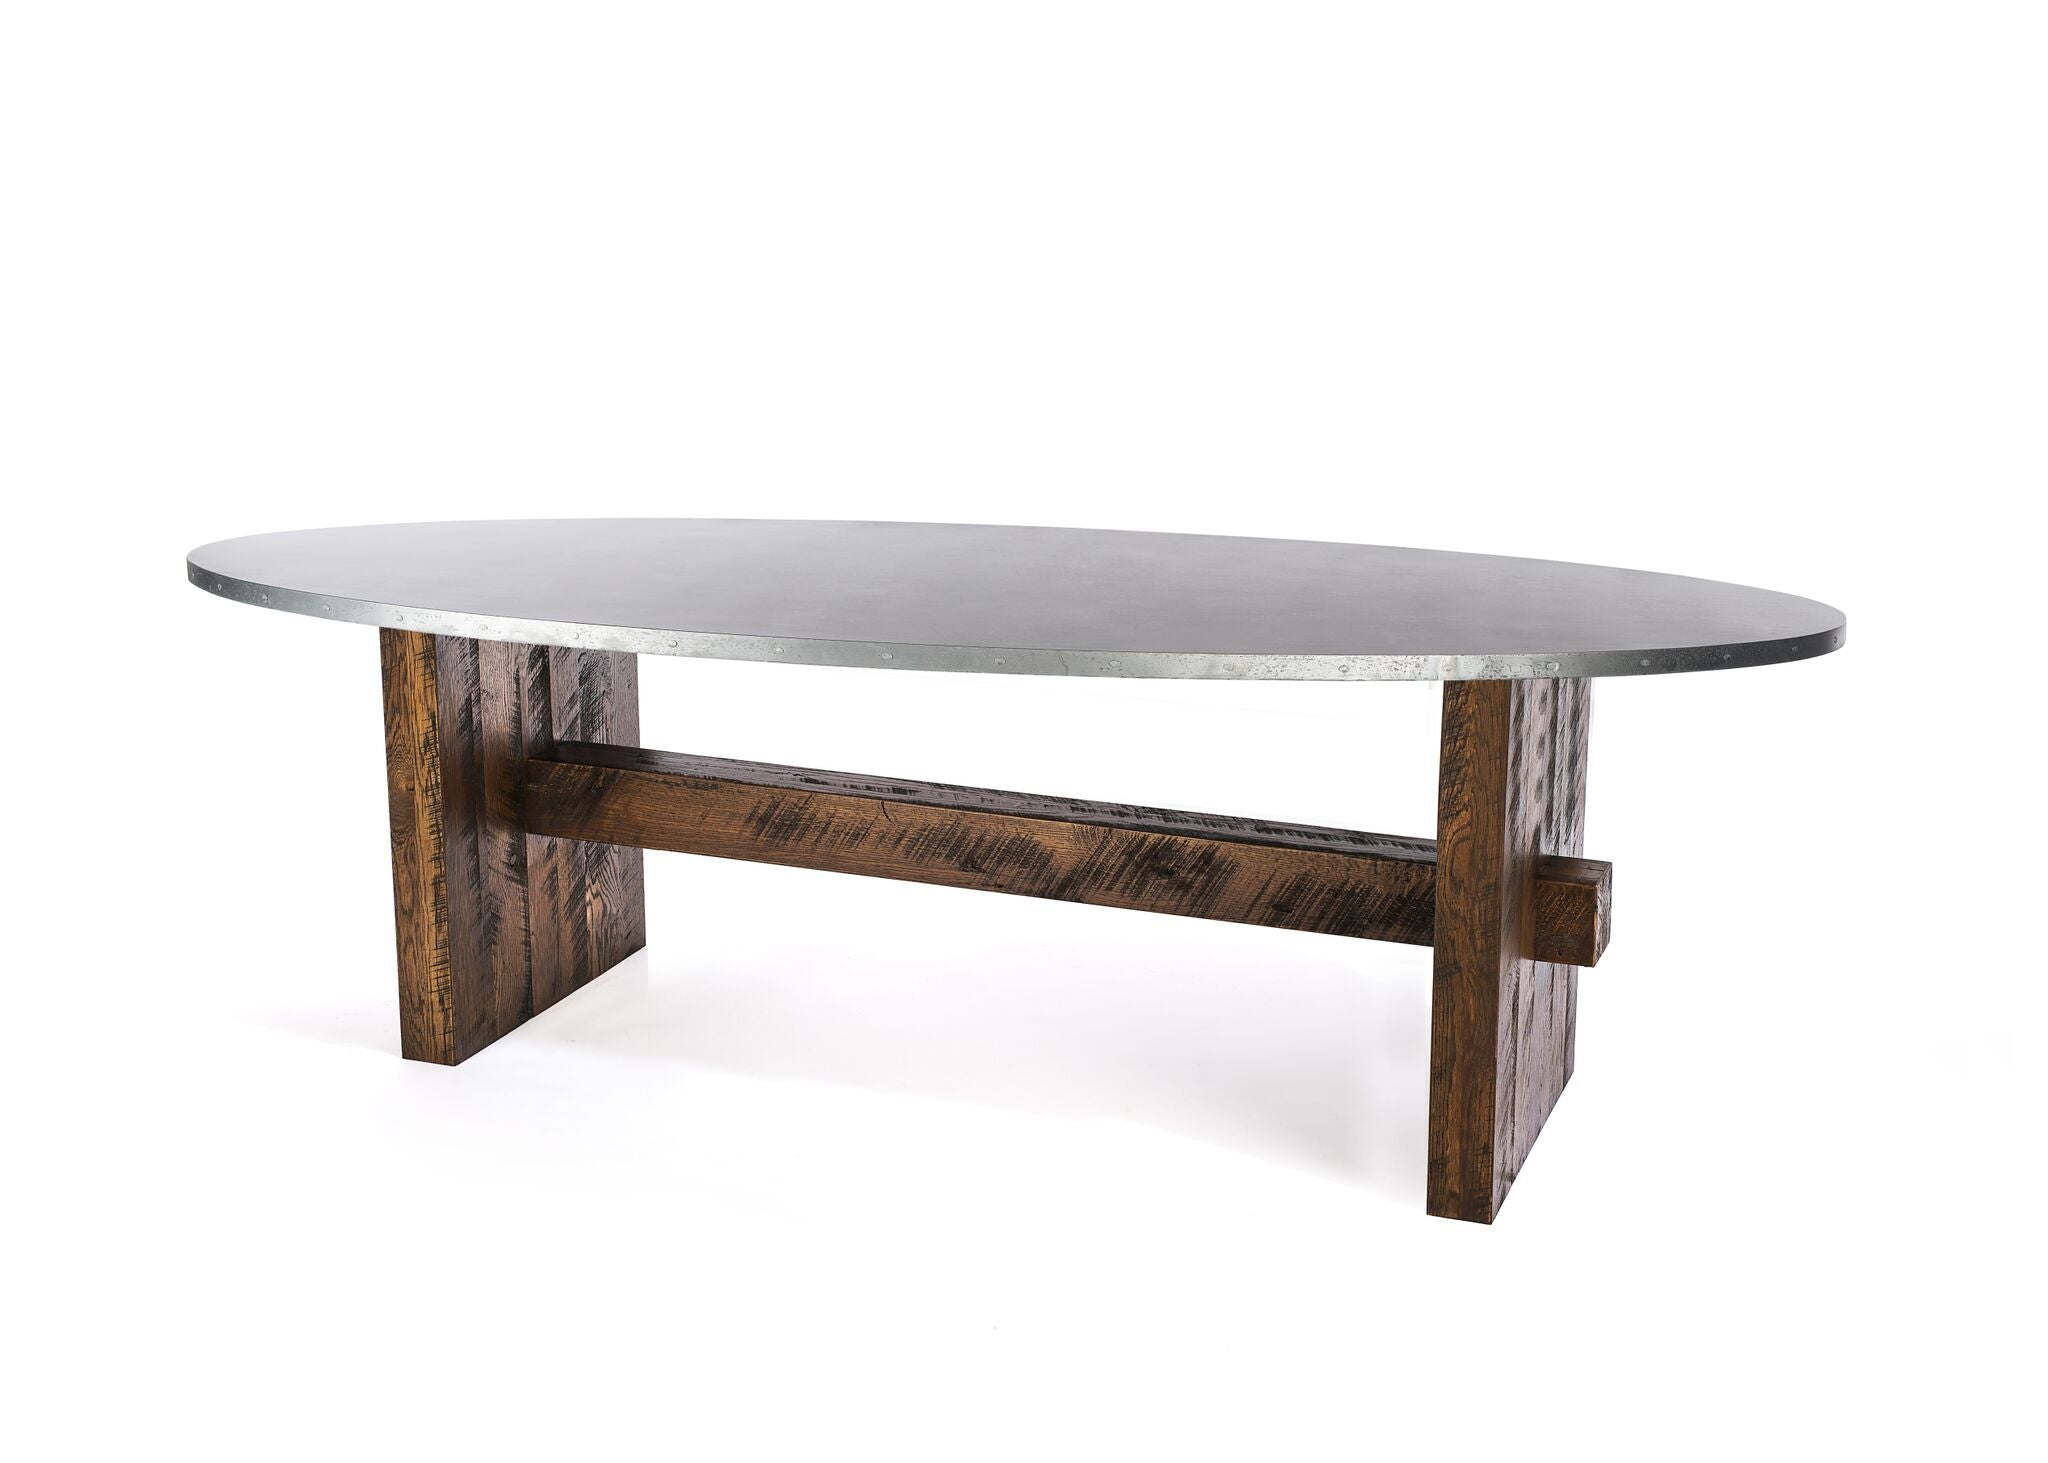 "Zinc Oval Tables | Redford Trestle Table | CLASSIC | Natural Black Walnut | CUSTOM SIZE 60""L 36""W 30""H 